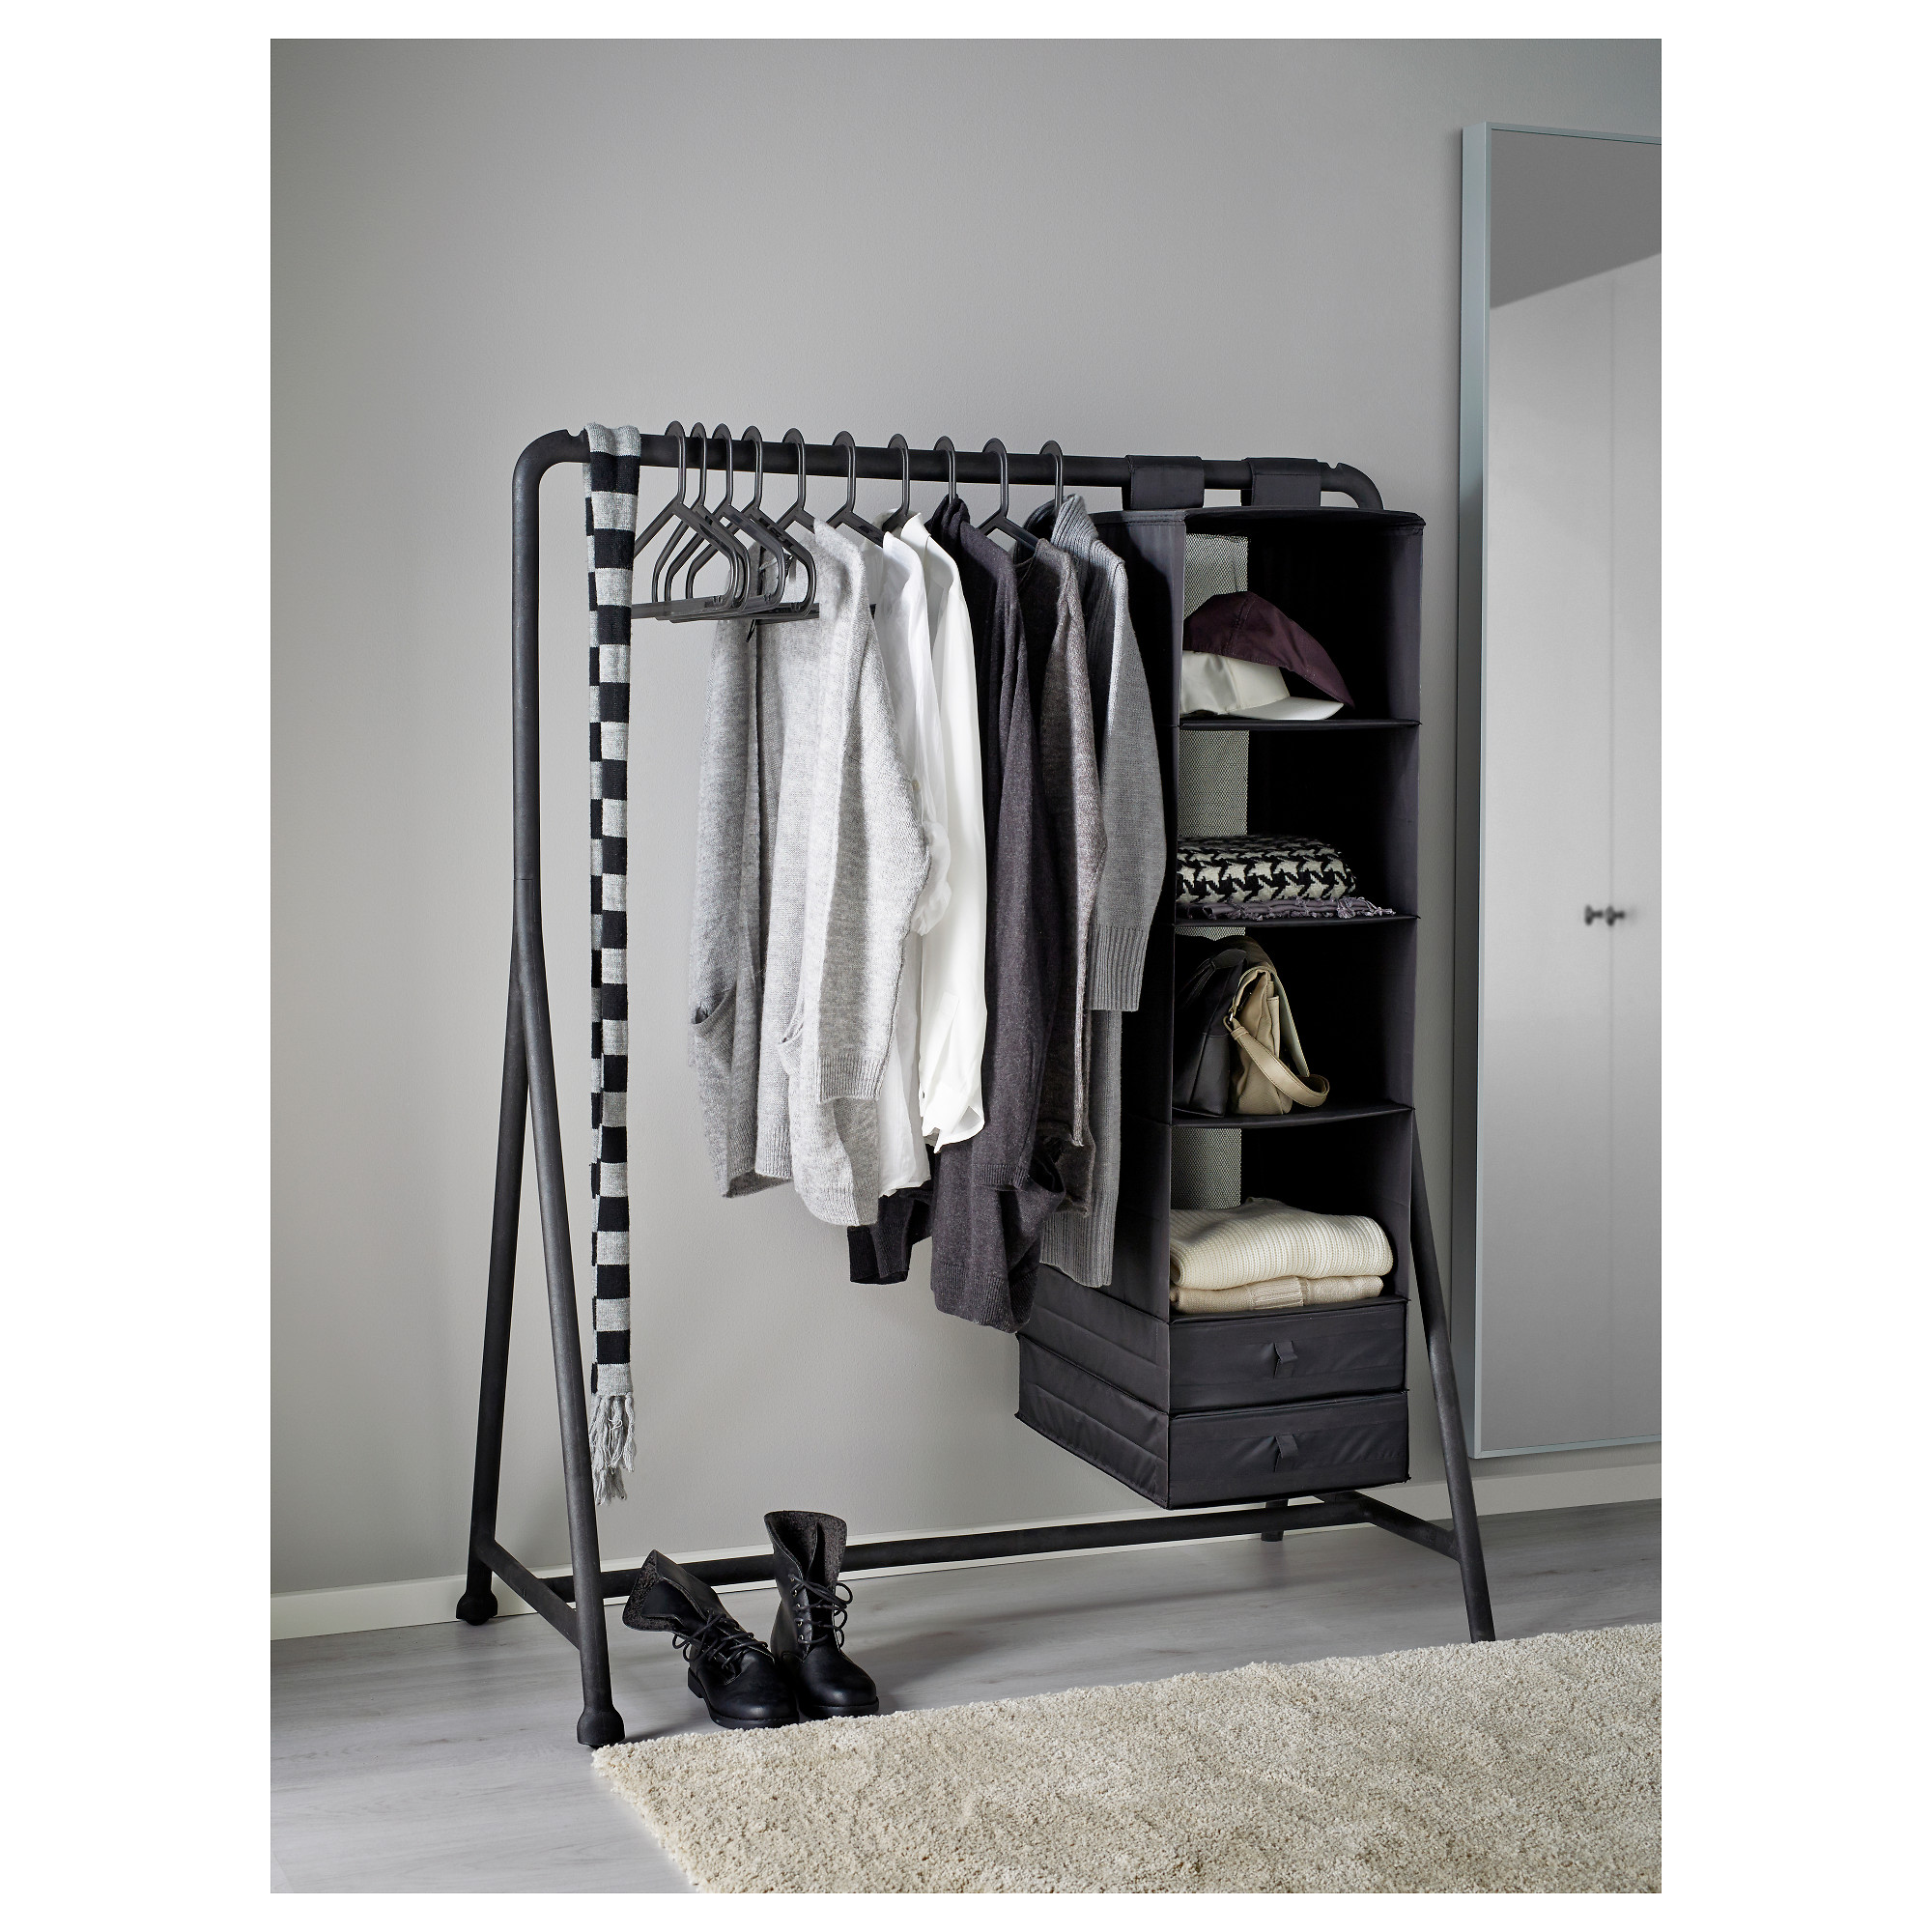 turbo clothes rack, indoor/outdoor - ikea